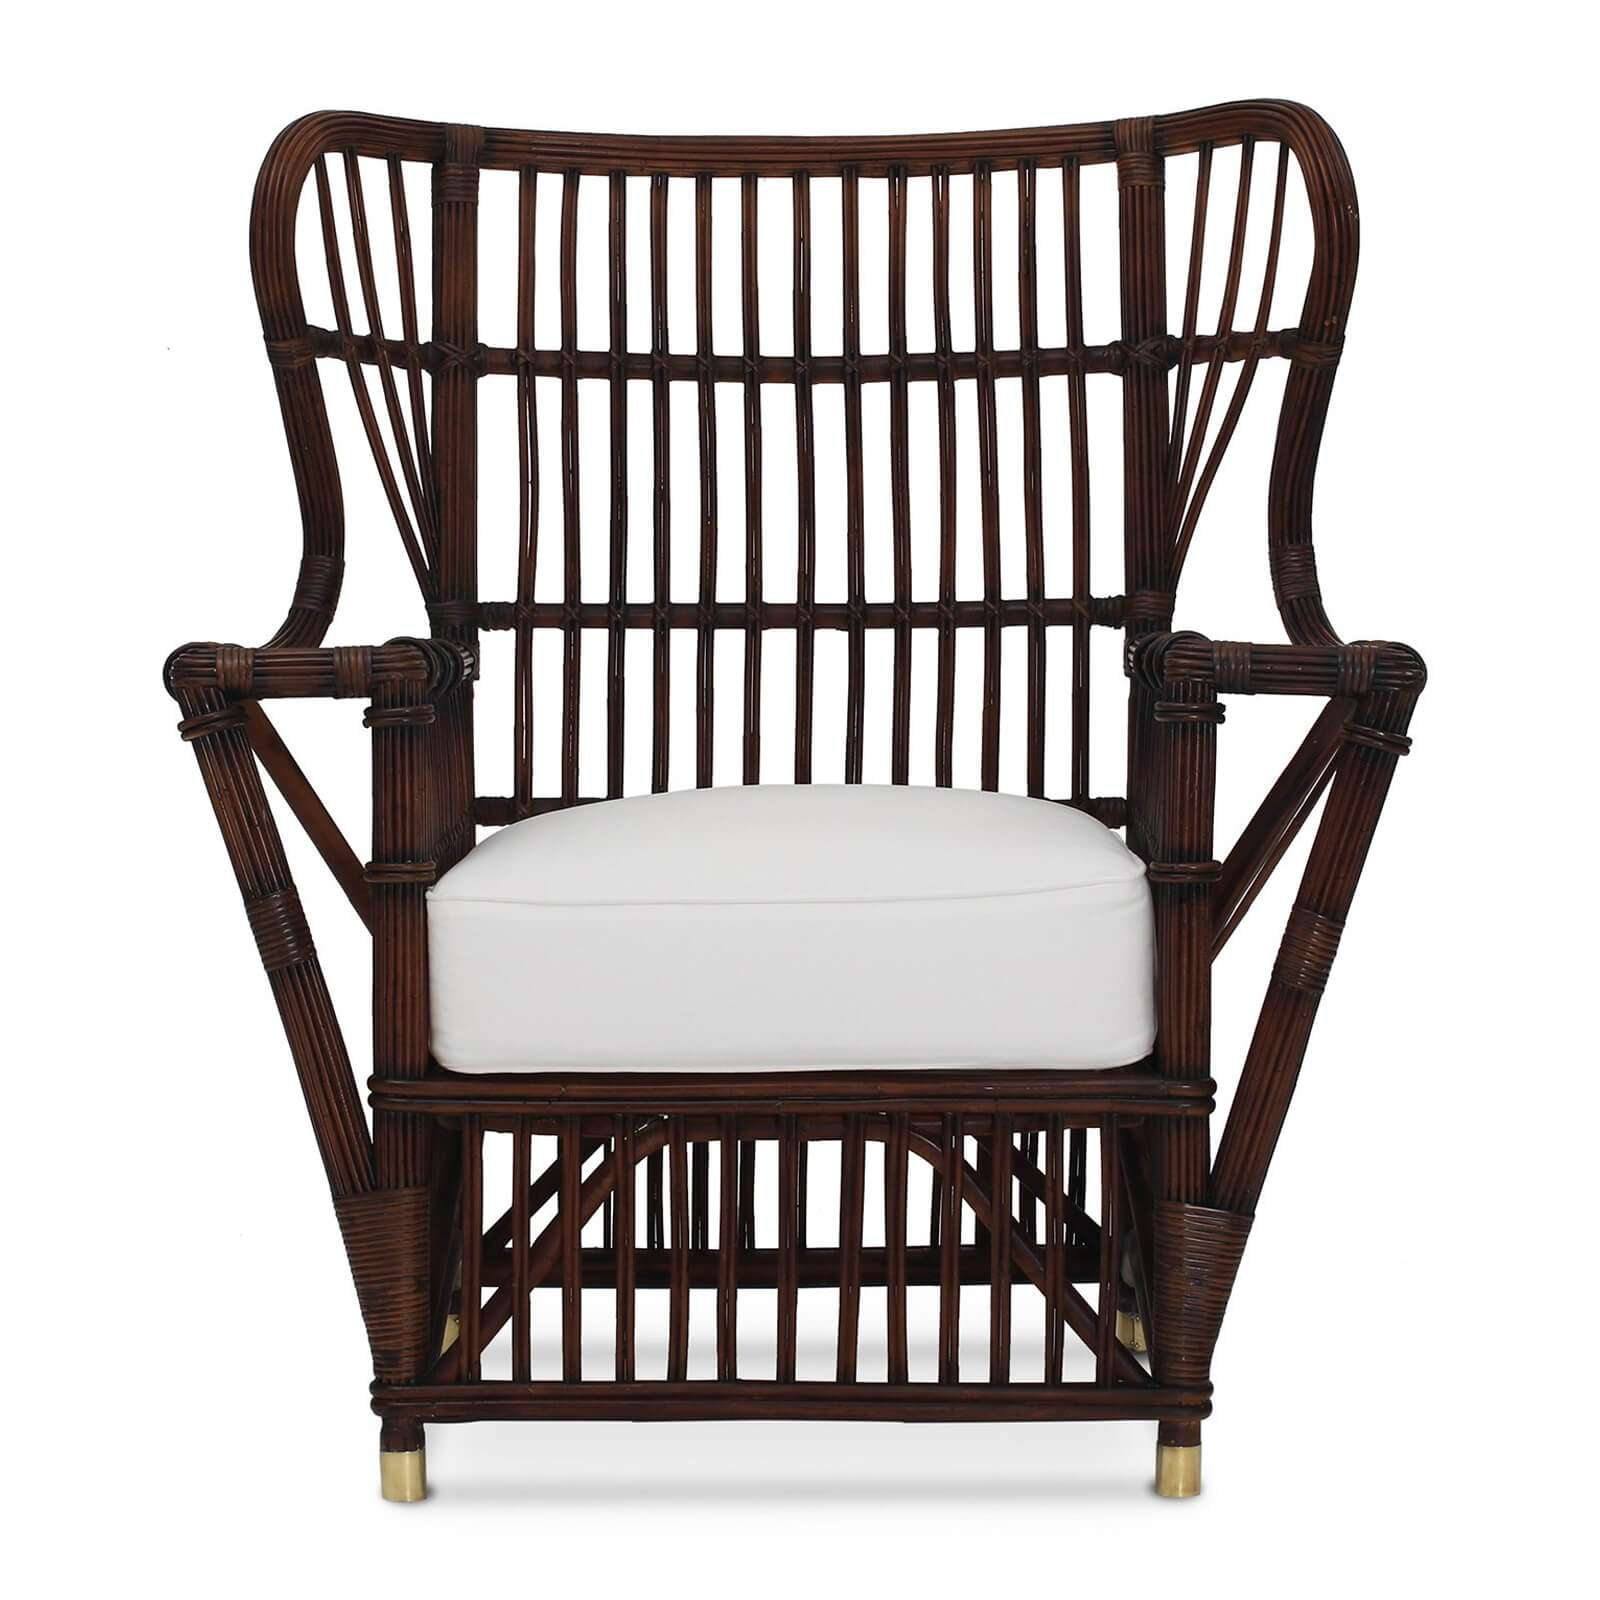 BUNGALOW WING CHAIR 2 - STUART MEMBERY HOME COLLECTION